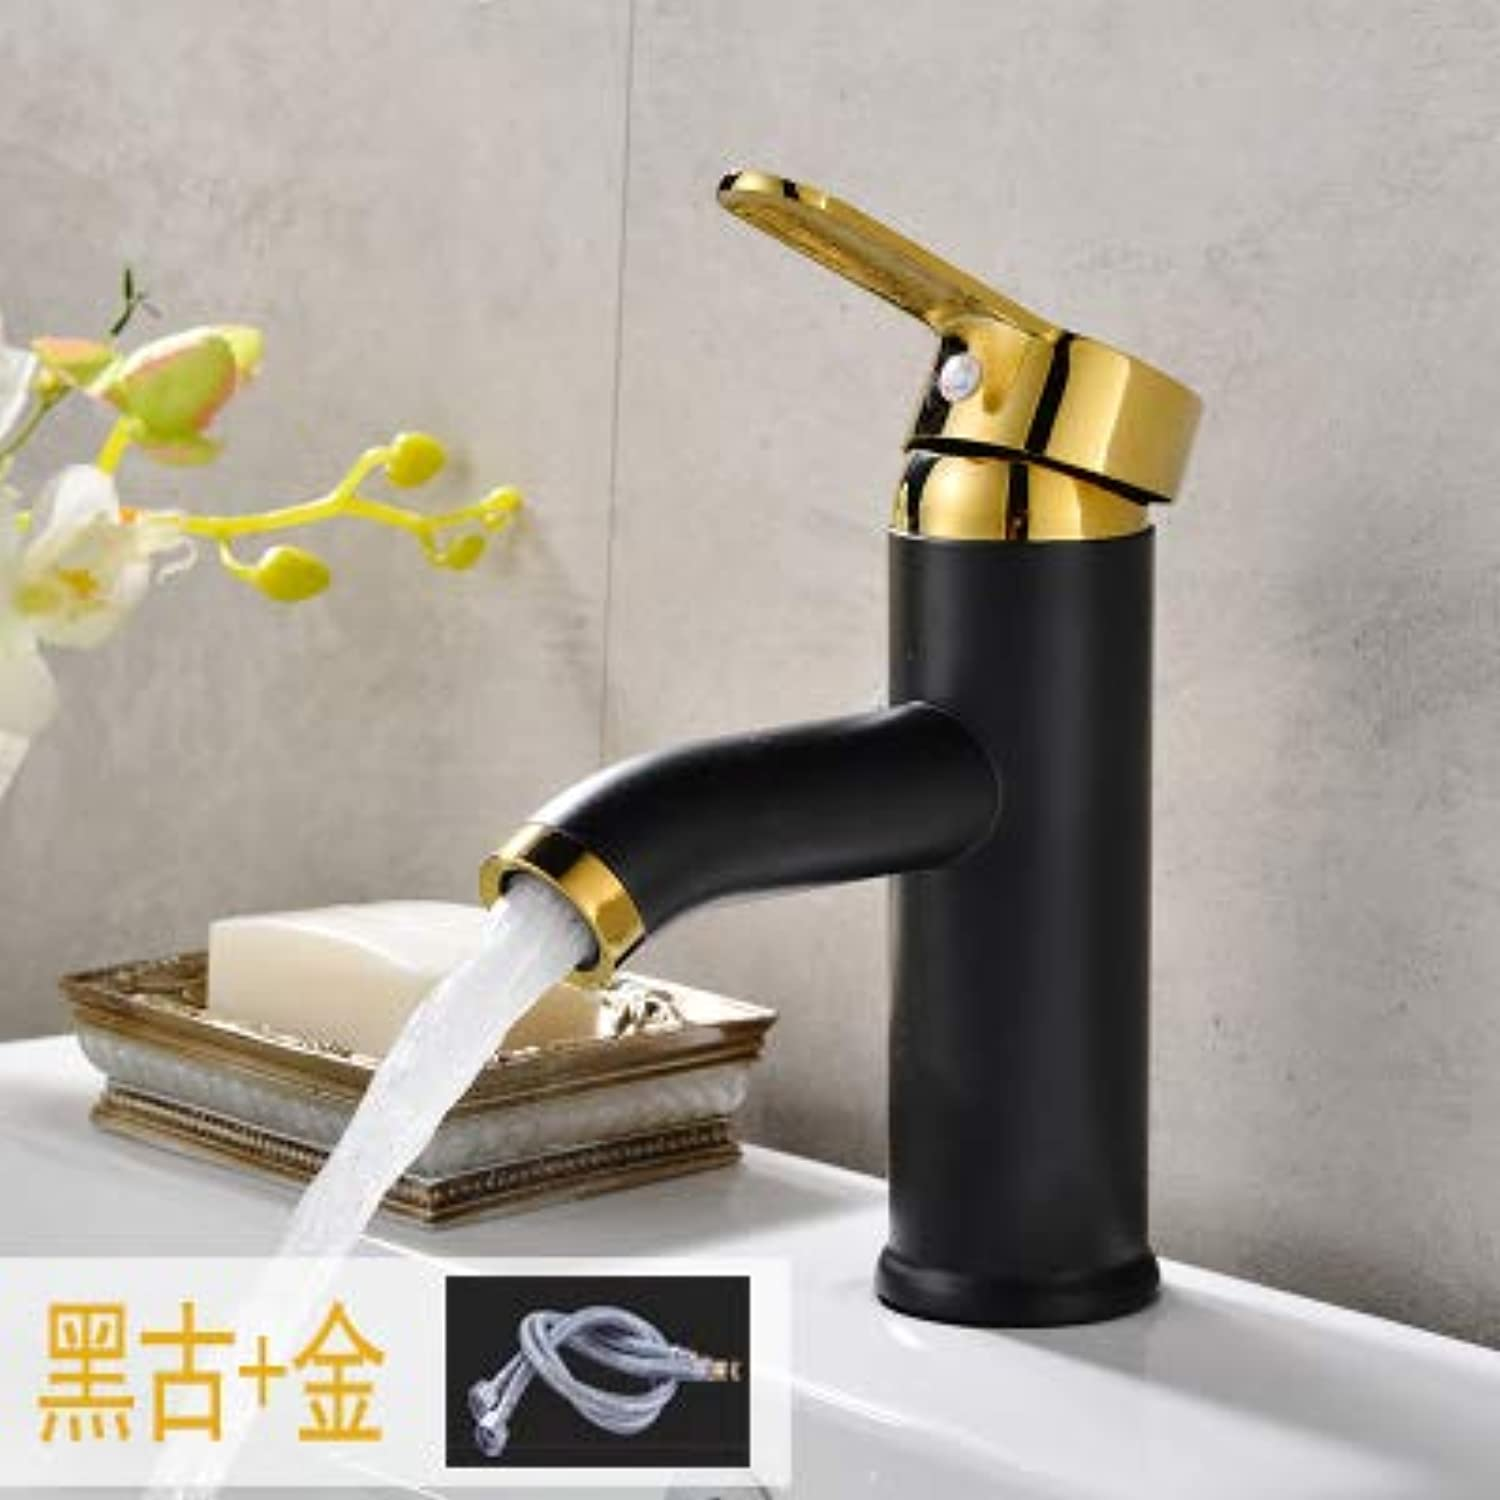 JWLT Faucet European Style Black Water Faucet Art Basin Mixing Valve Single Hole heightened Bathroom Cabinet Basin Cold hot tap Switch,Black and golden Elegant 17 high 60 Long Tube